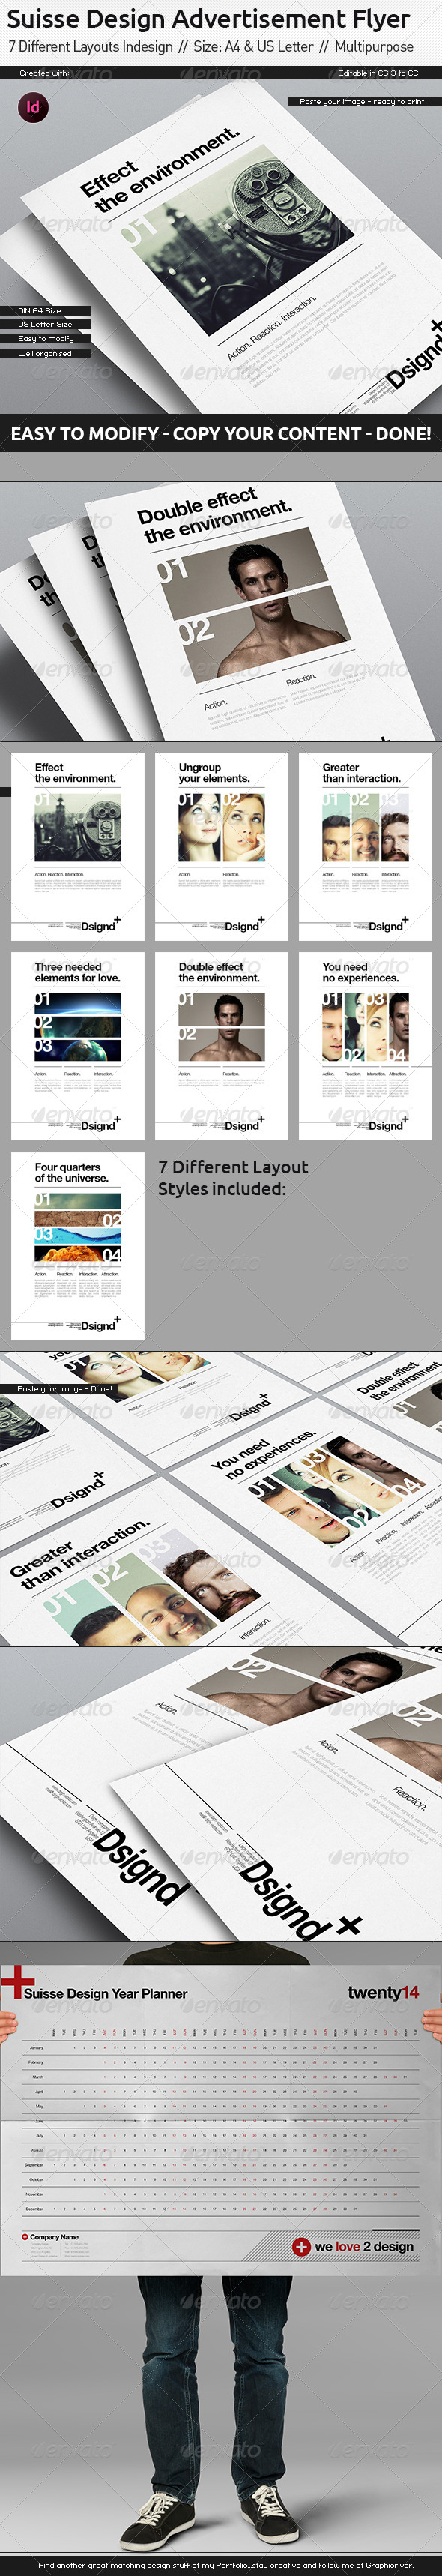 GraphicRiver Swiss Design Advertisment 7 Layouts 6057750